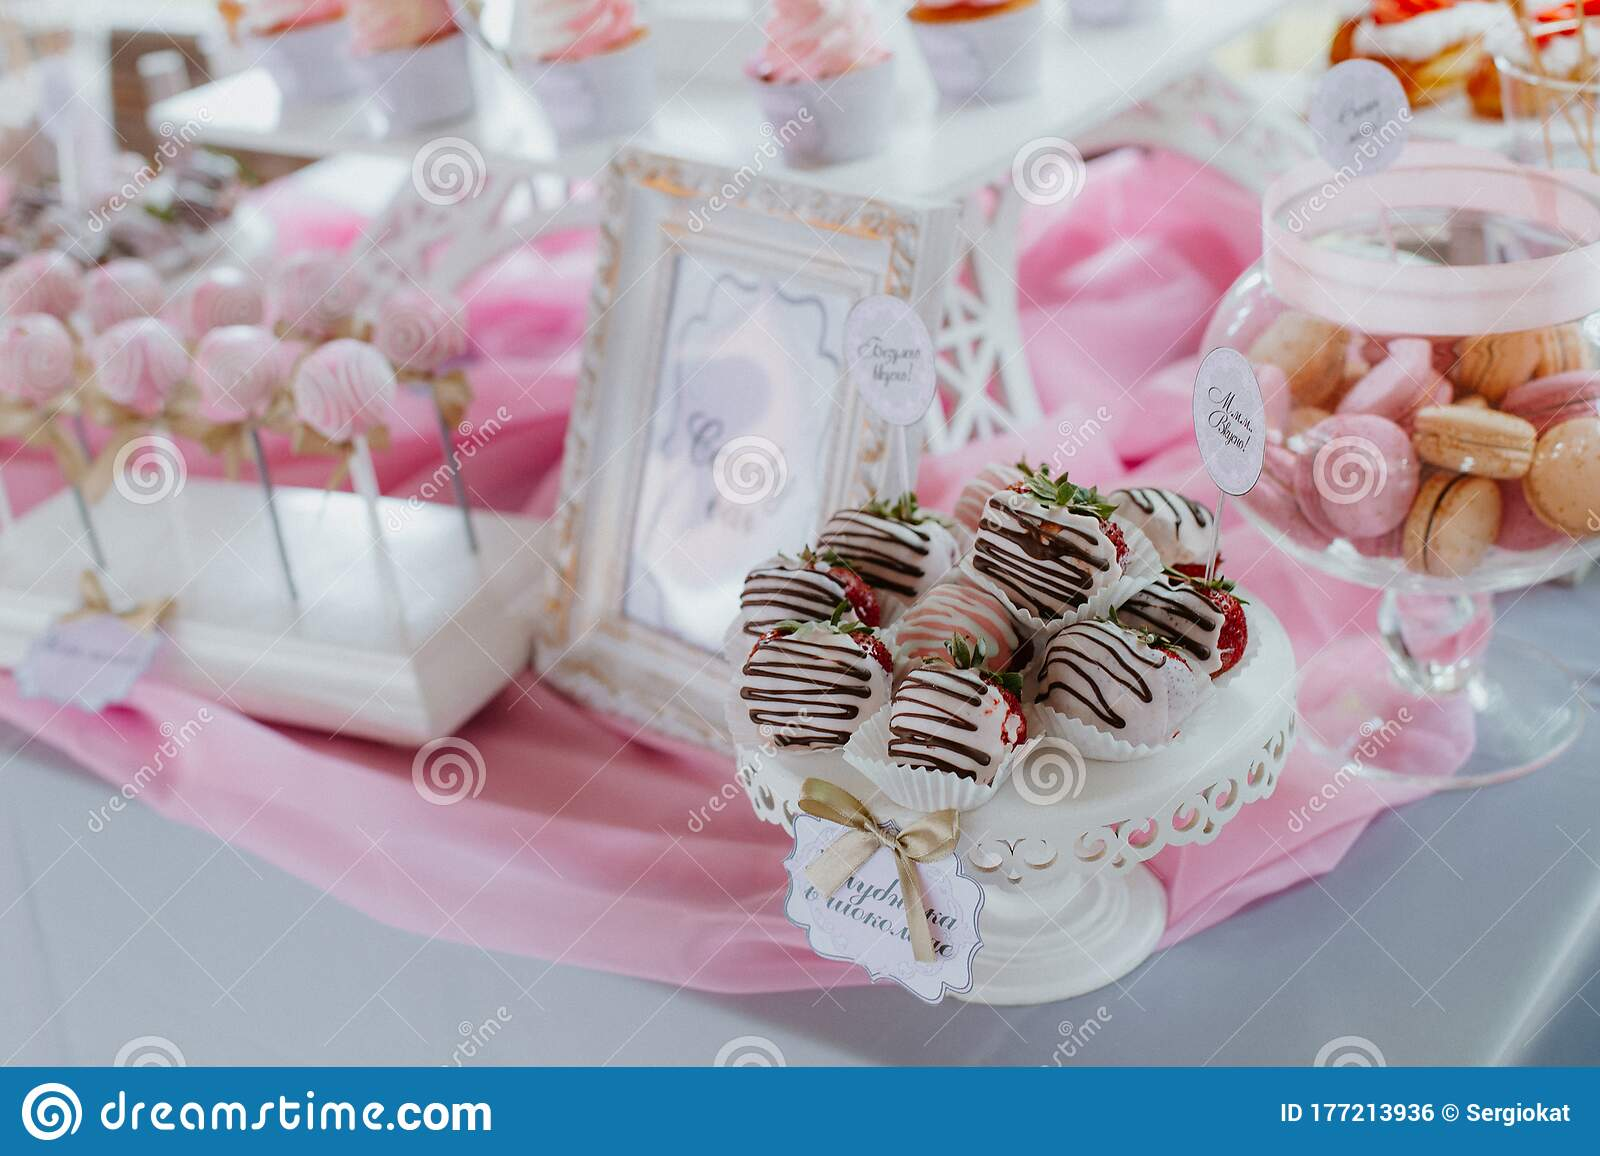 Sweet Dessert Table Or Candy Bar Wedding Party Natural Light Macaron And Meringue Pyramid Cupcakes And Marshmallow Stock Photo Image Of Delicious Cake 177213936